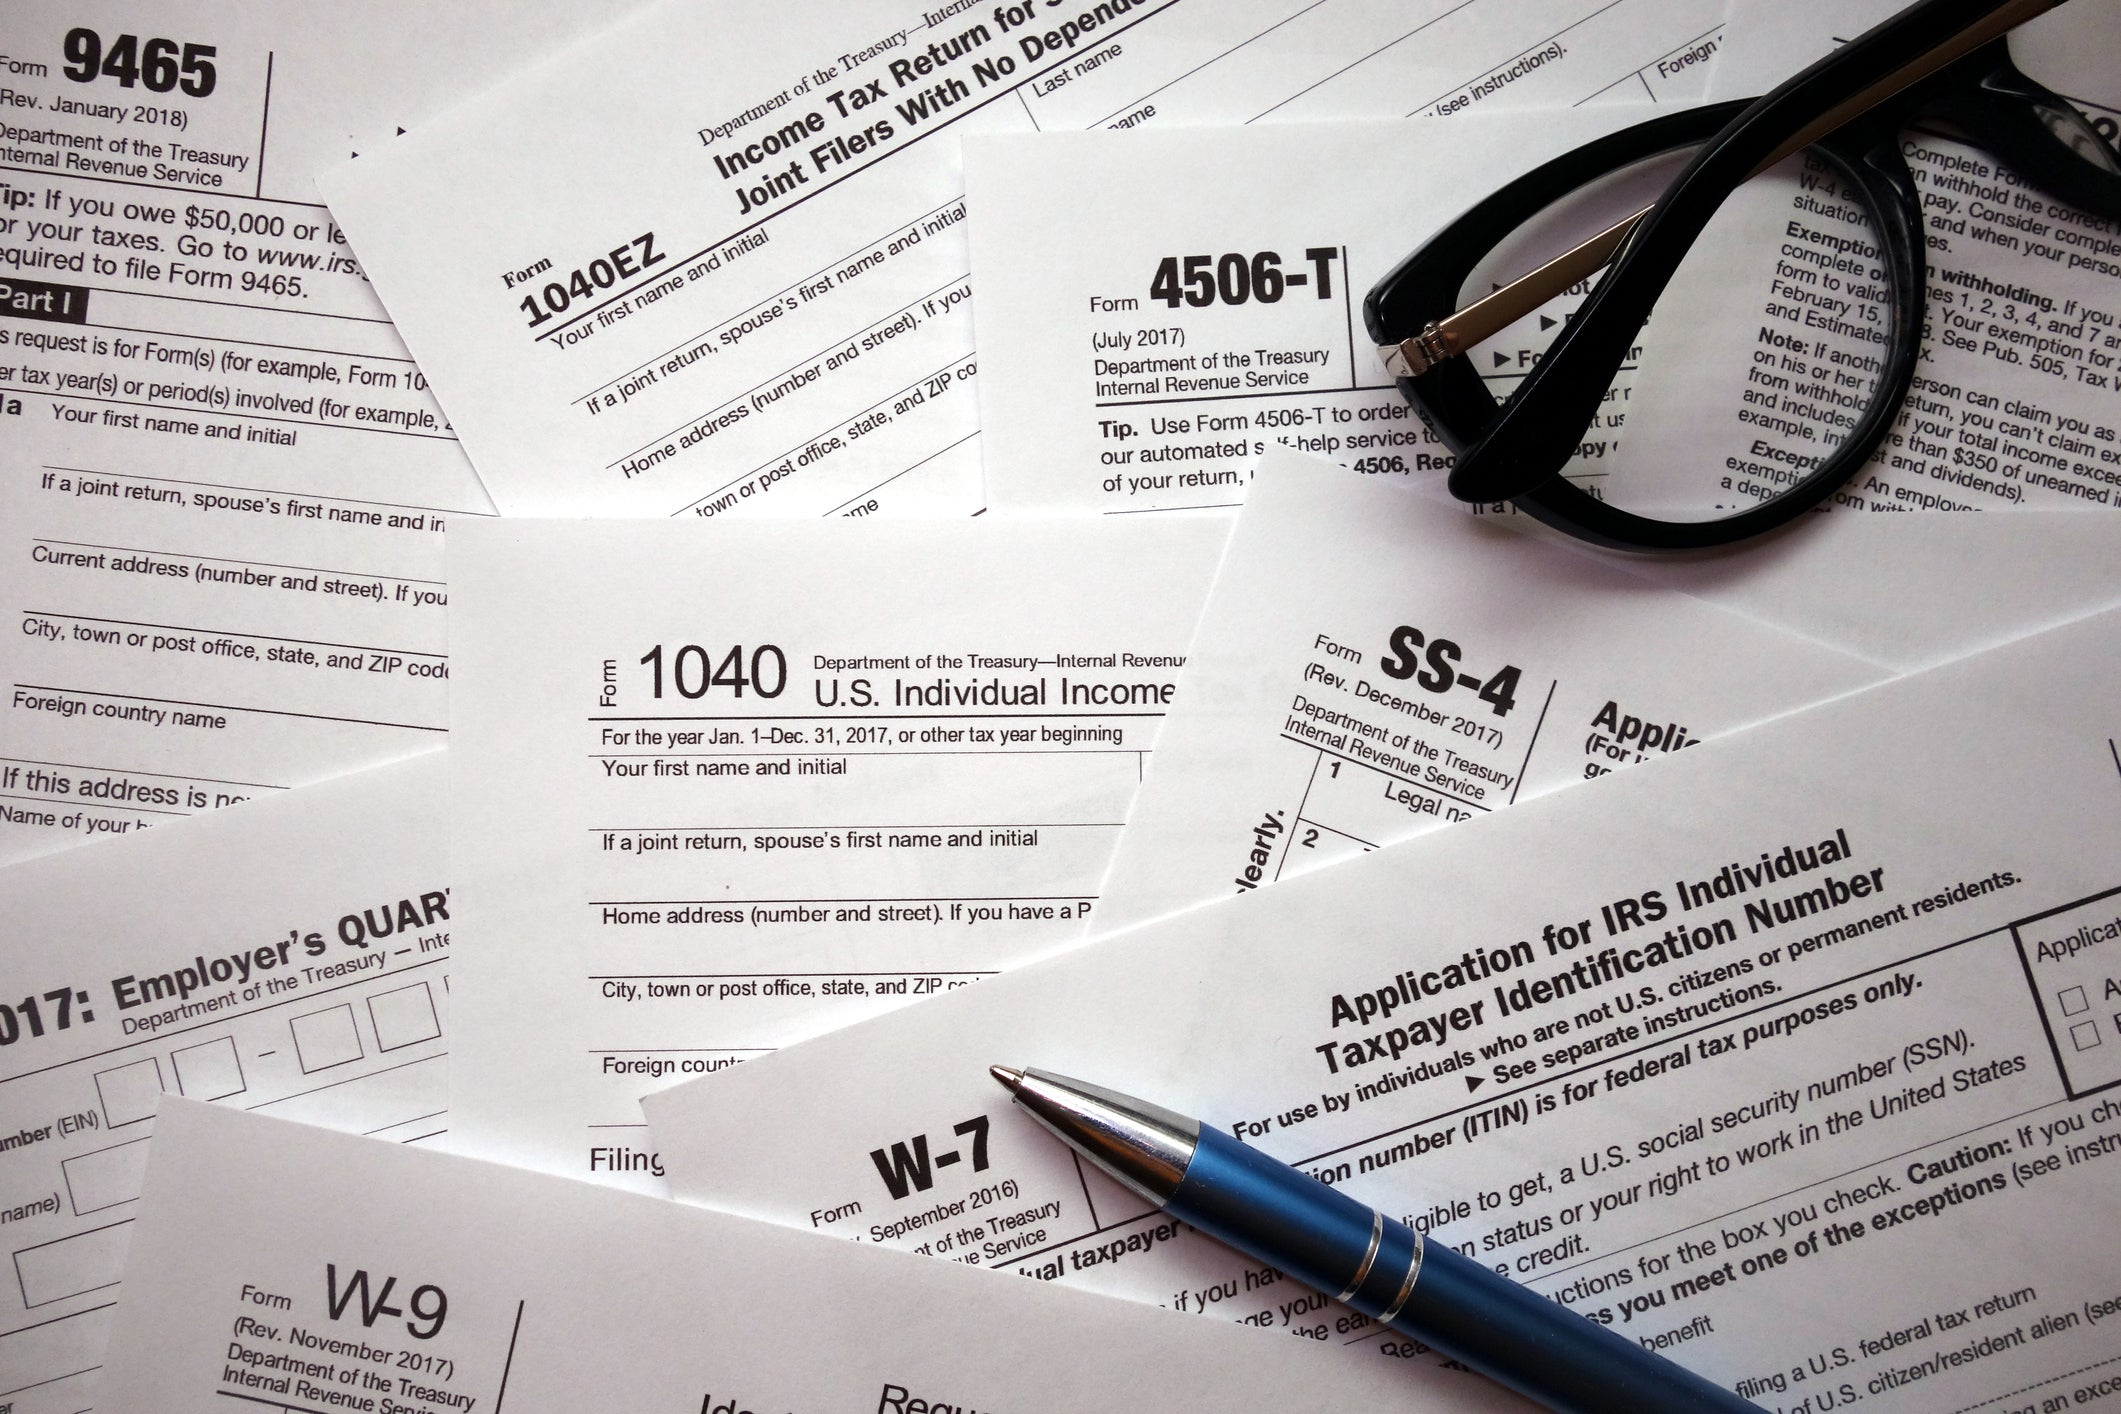 Why Would You Need Form 706? -- The Motley Fool